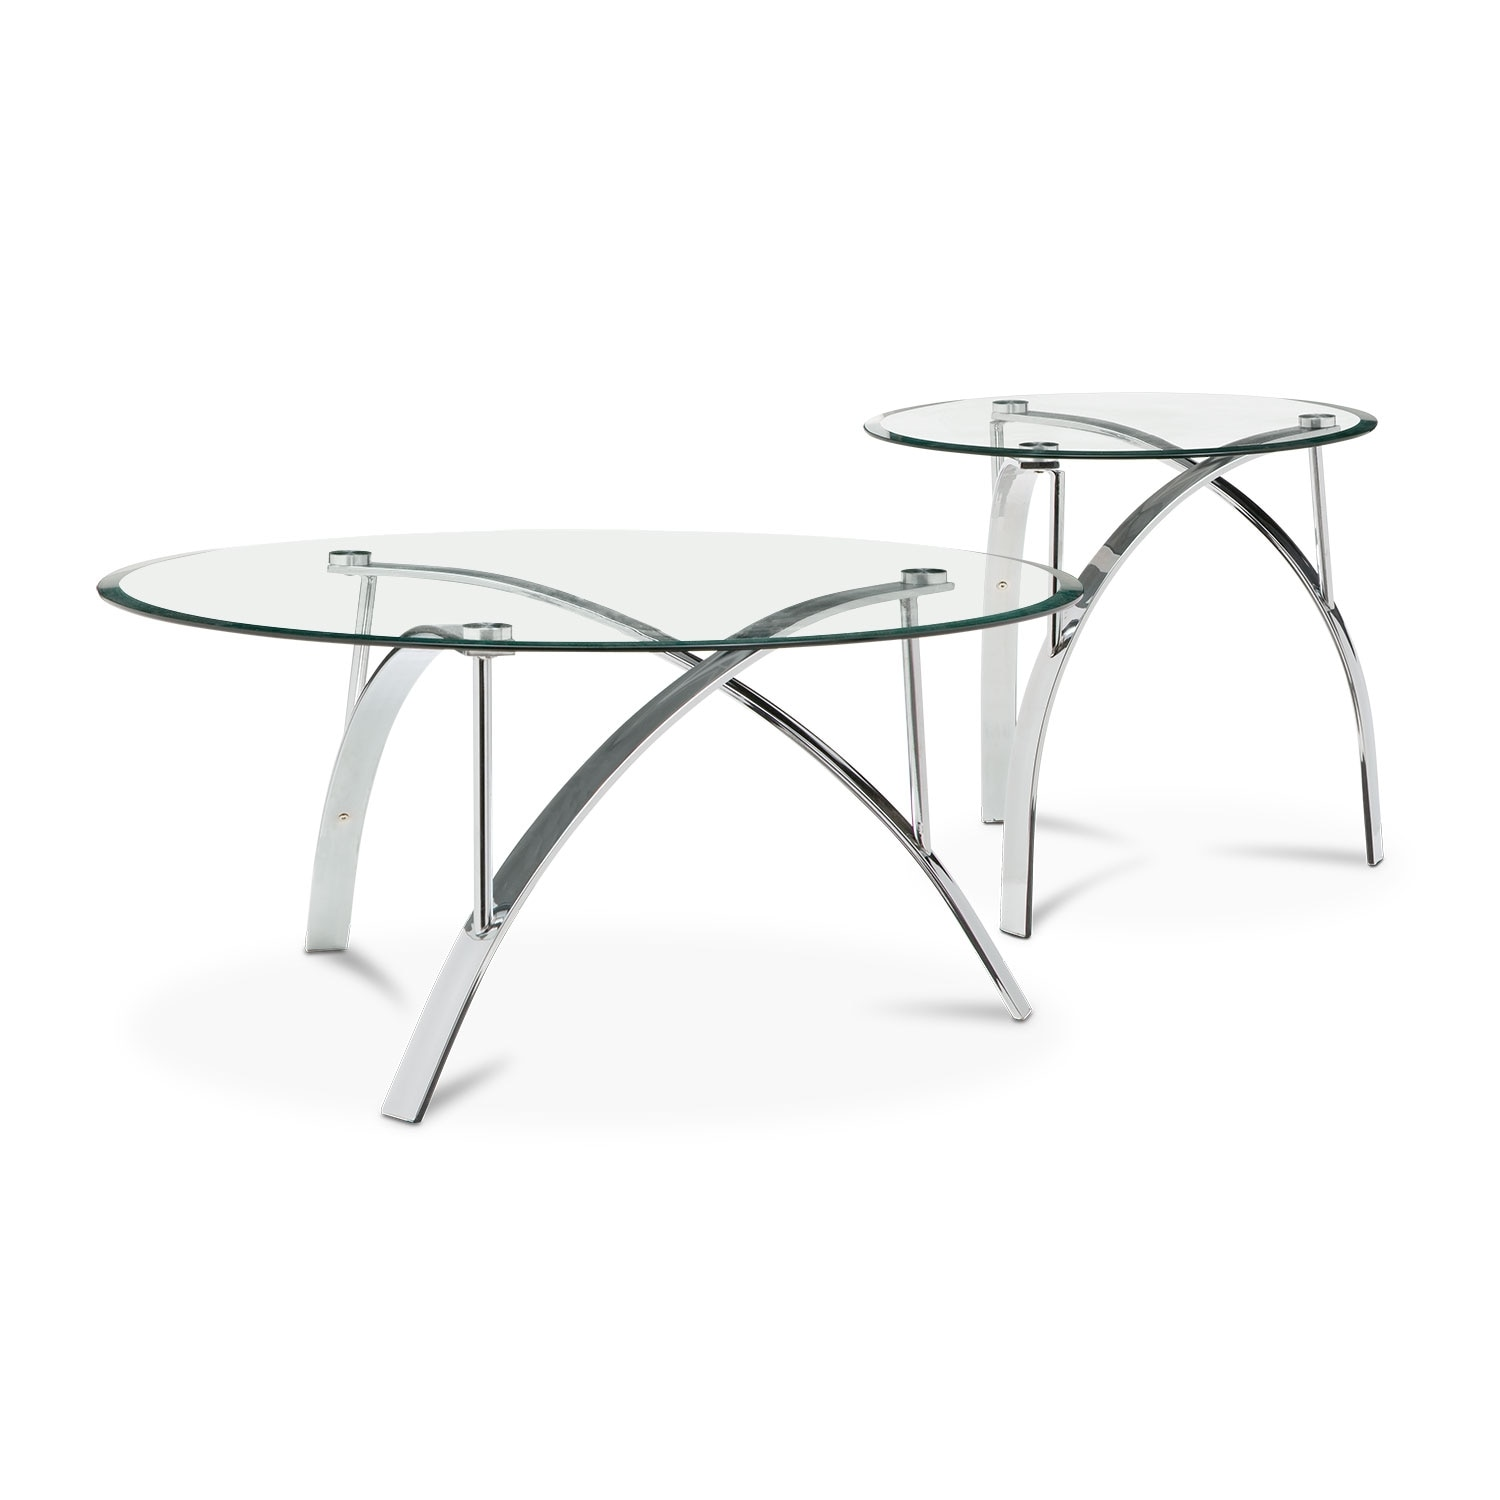 Mako Cocktail Table and End Table - Silver